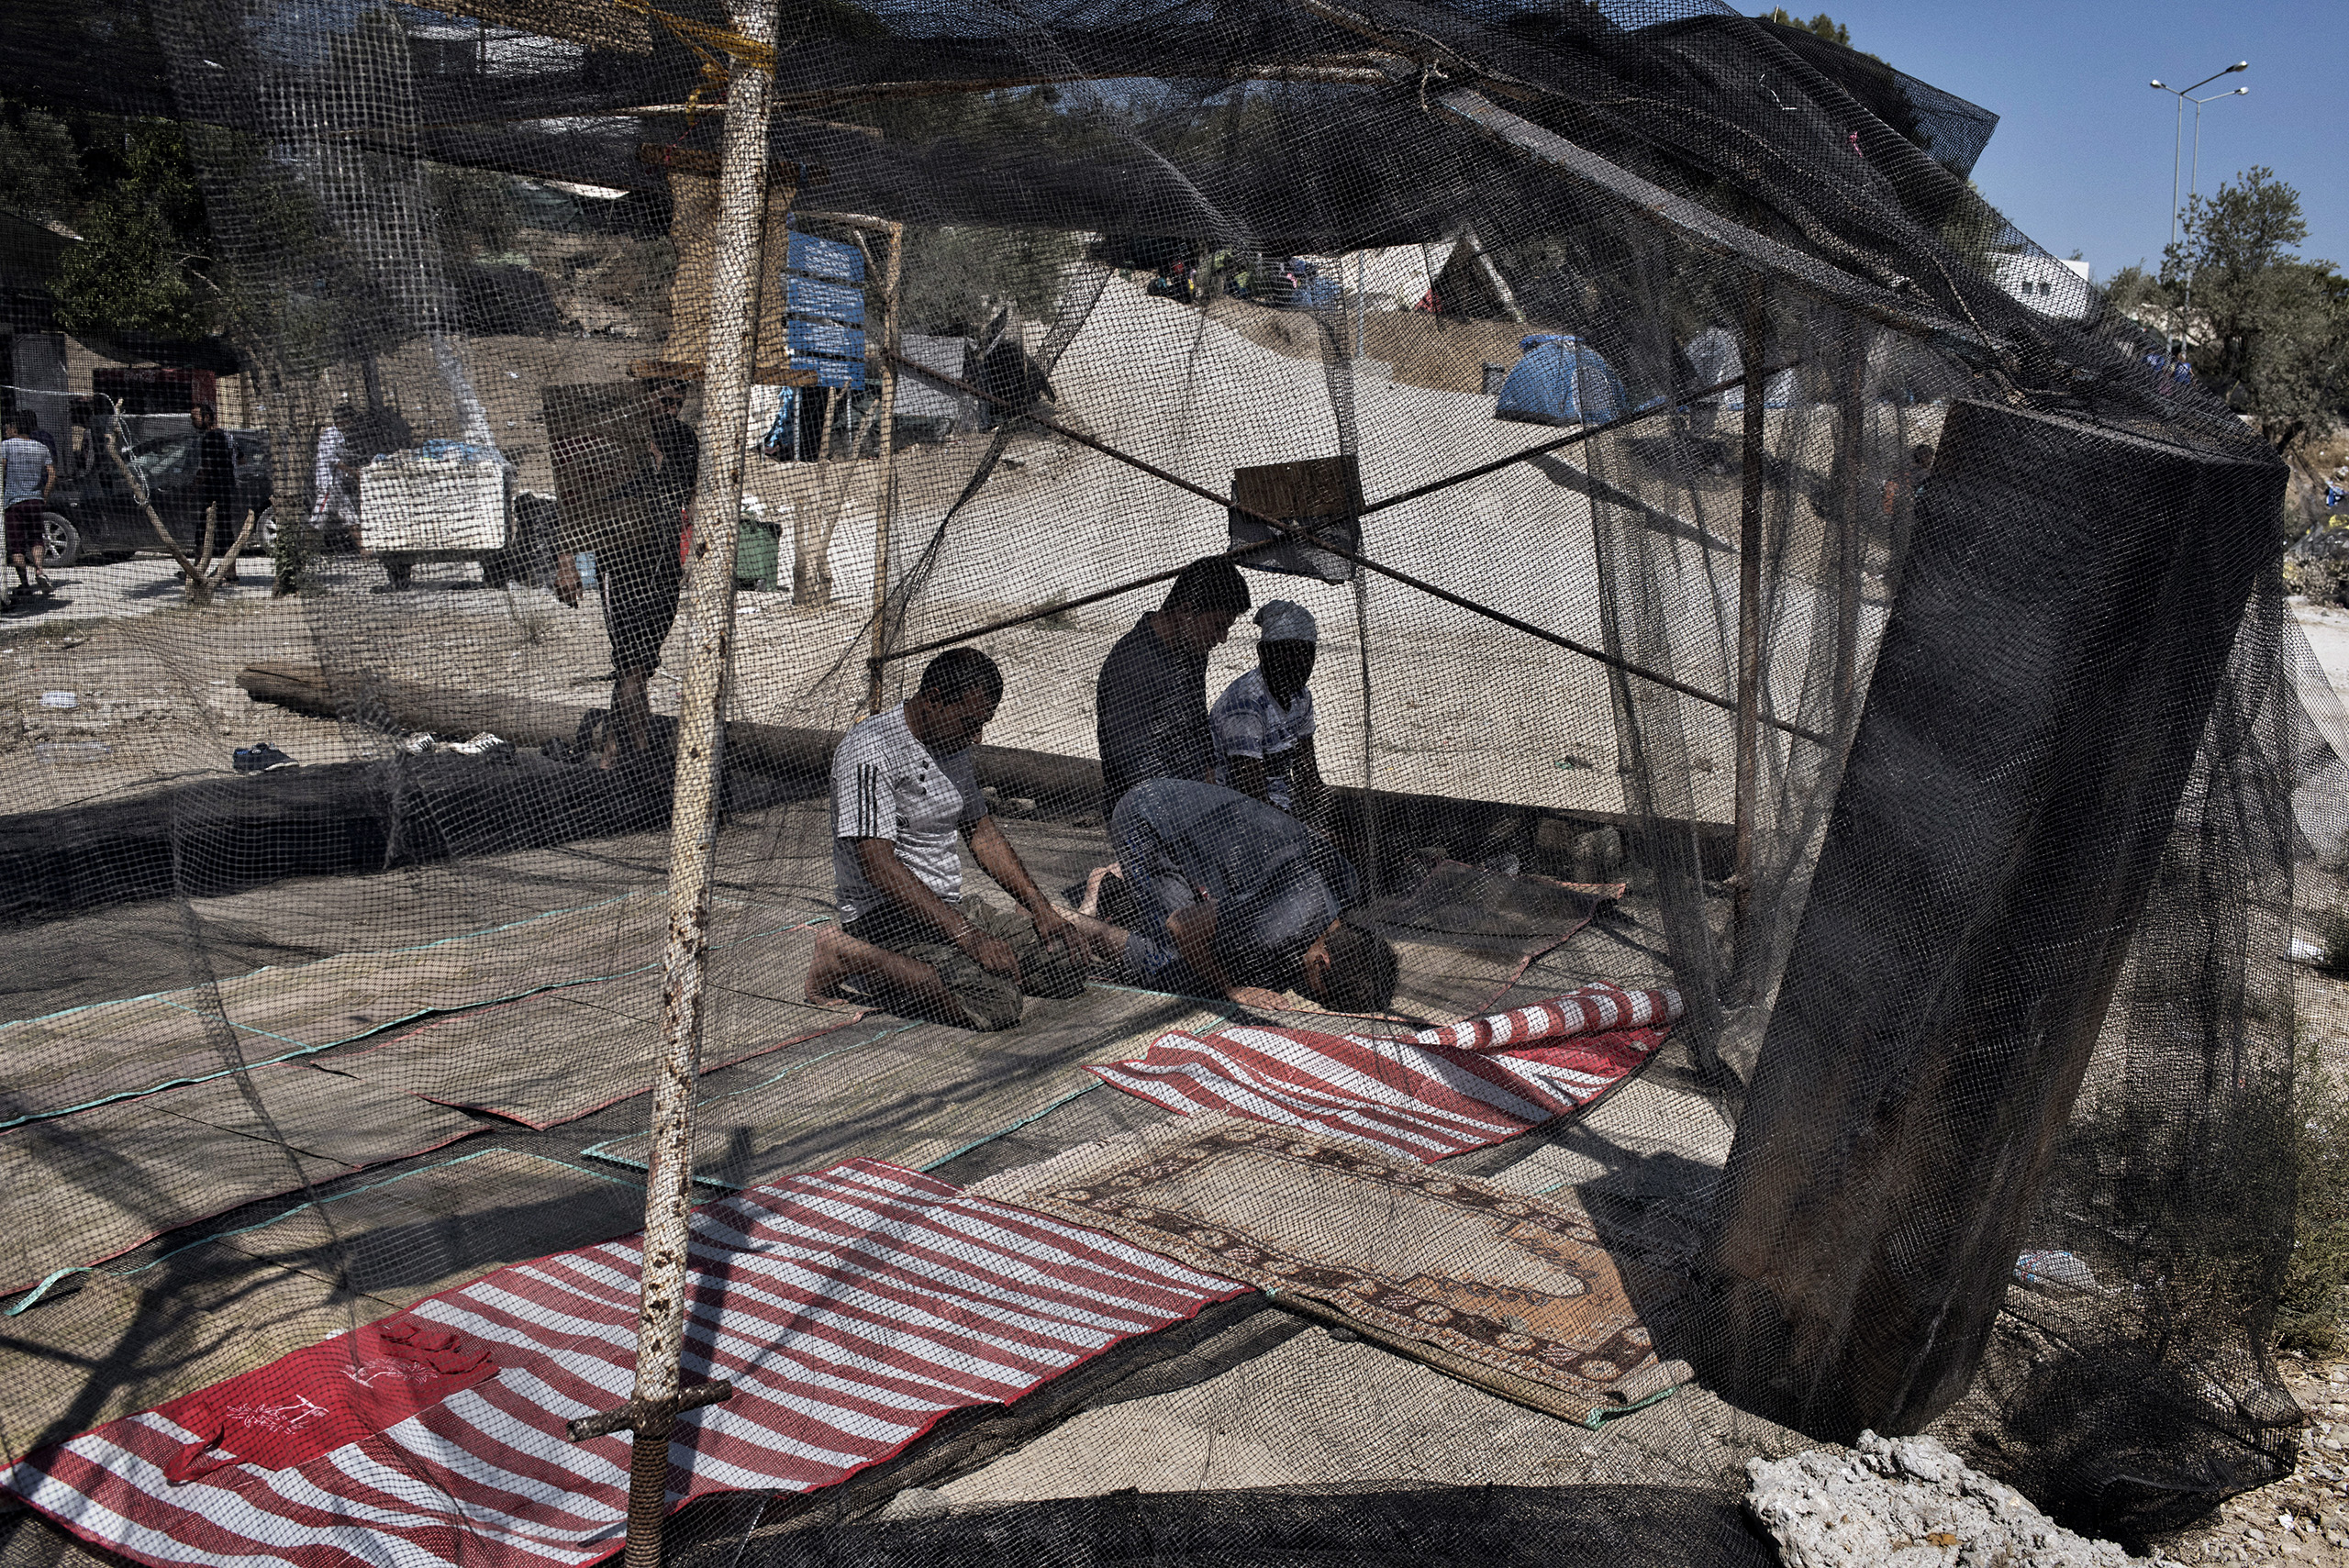 Migrants pray at the makeshift mosque they have built inside a detention and processing camp for asylum seekers on the Greek island of Lesbos.